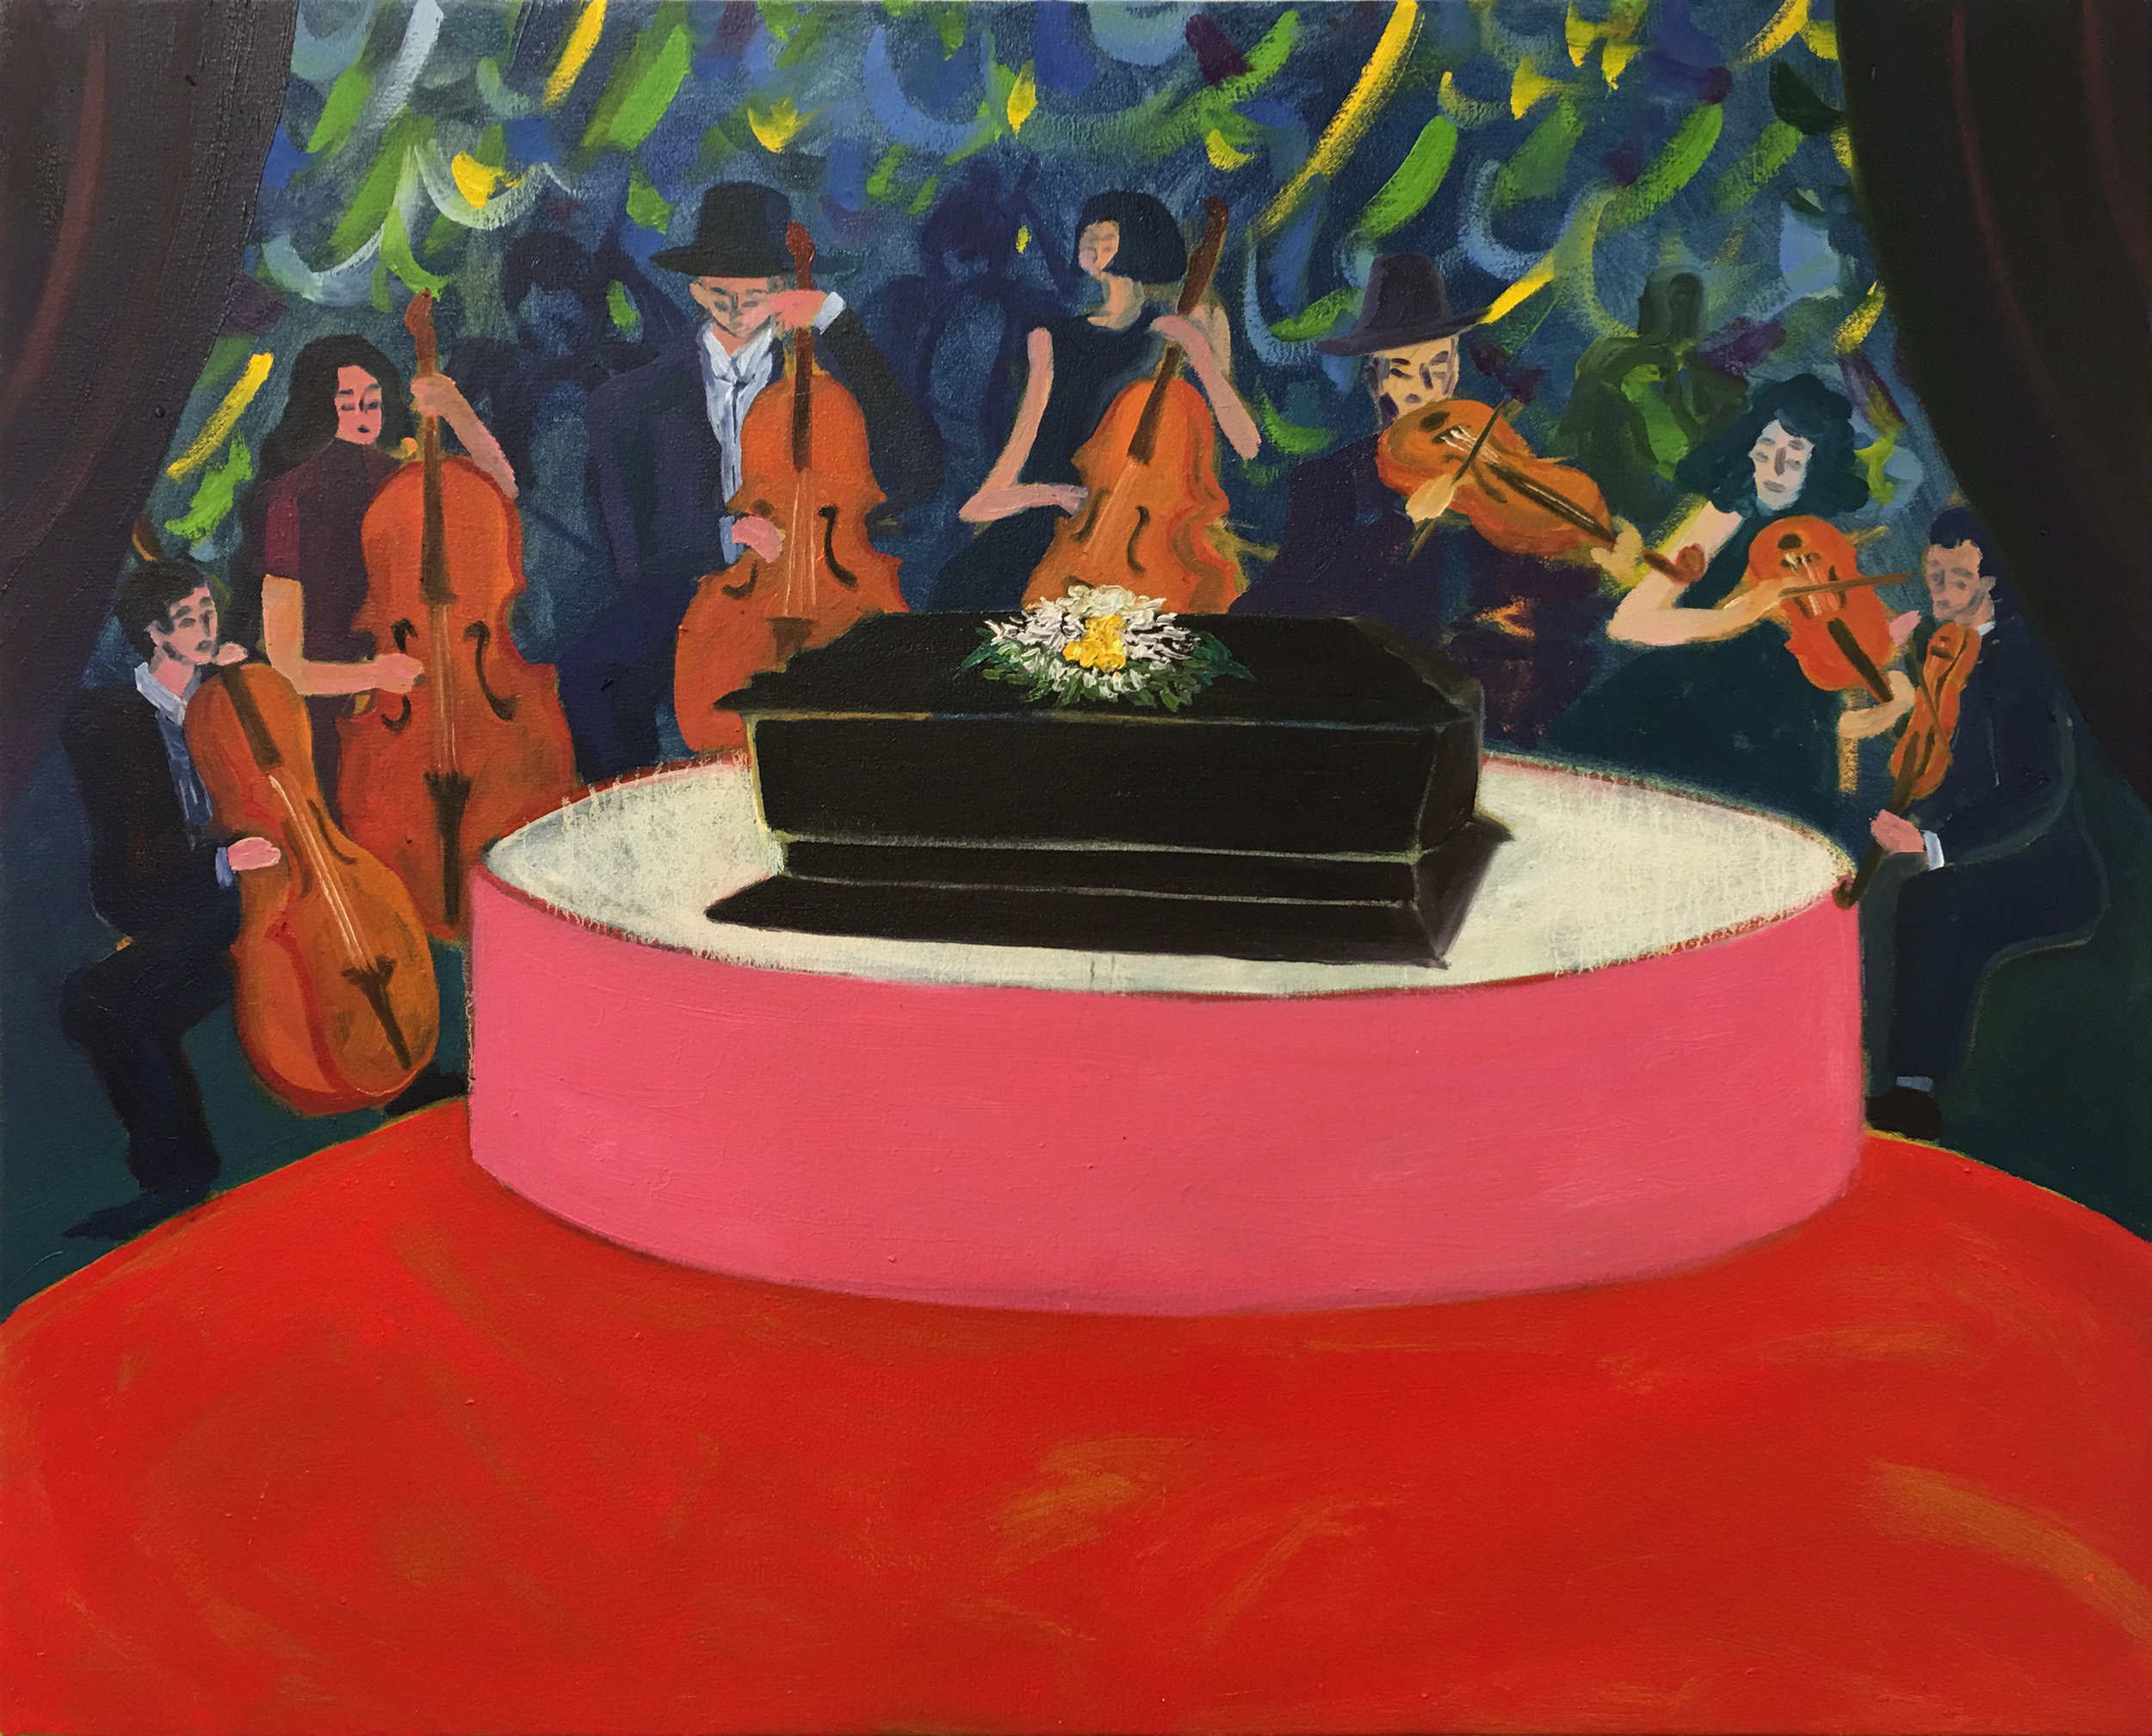 Orchestra funeral, 2018  Oil on canvas